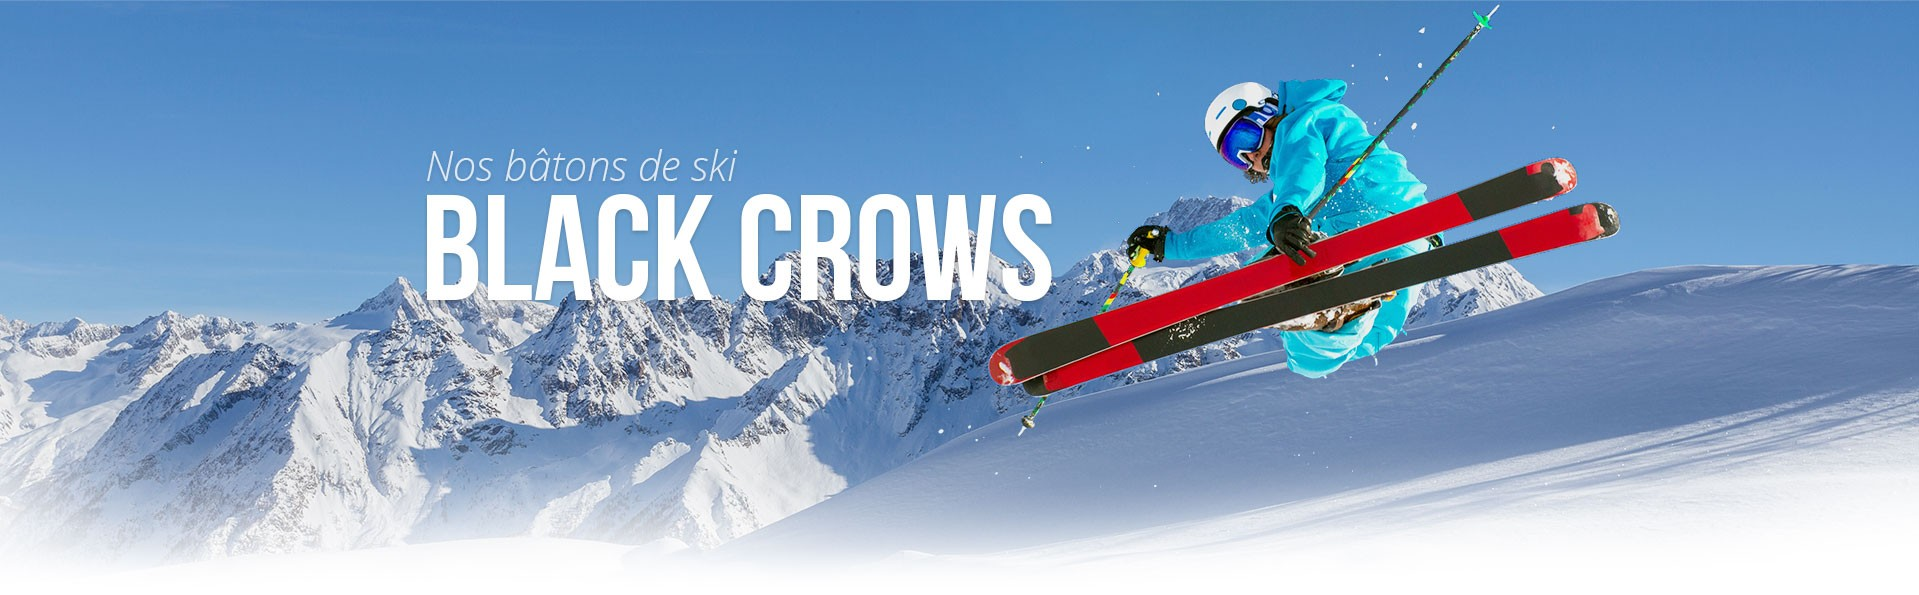 Bâtons de ski Black Crows